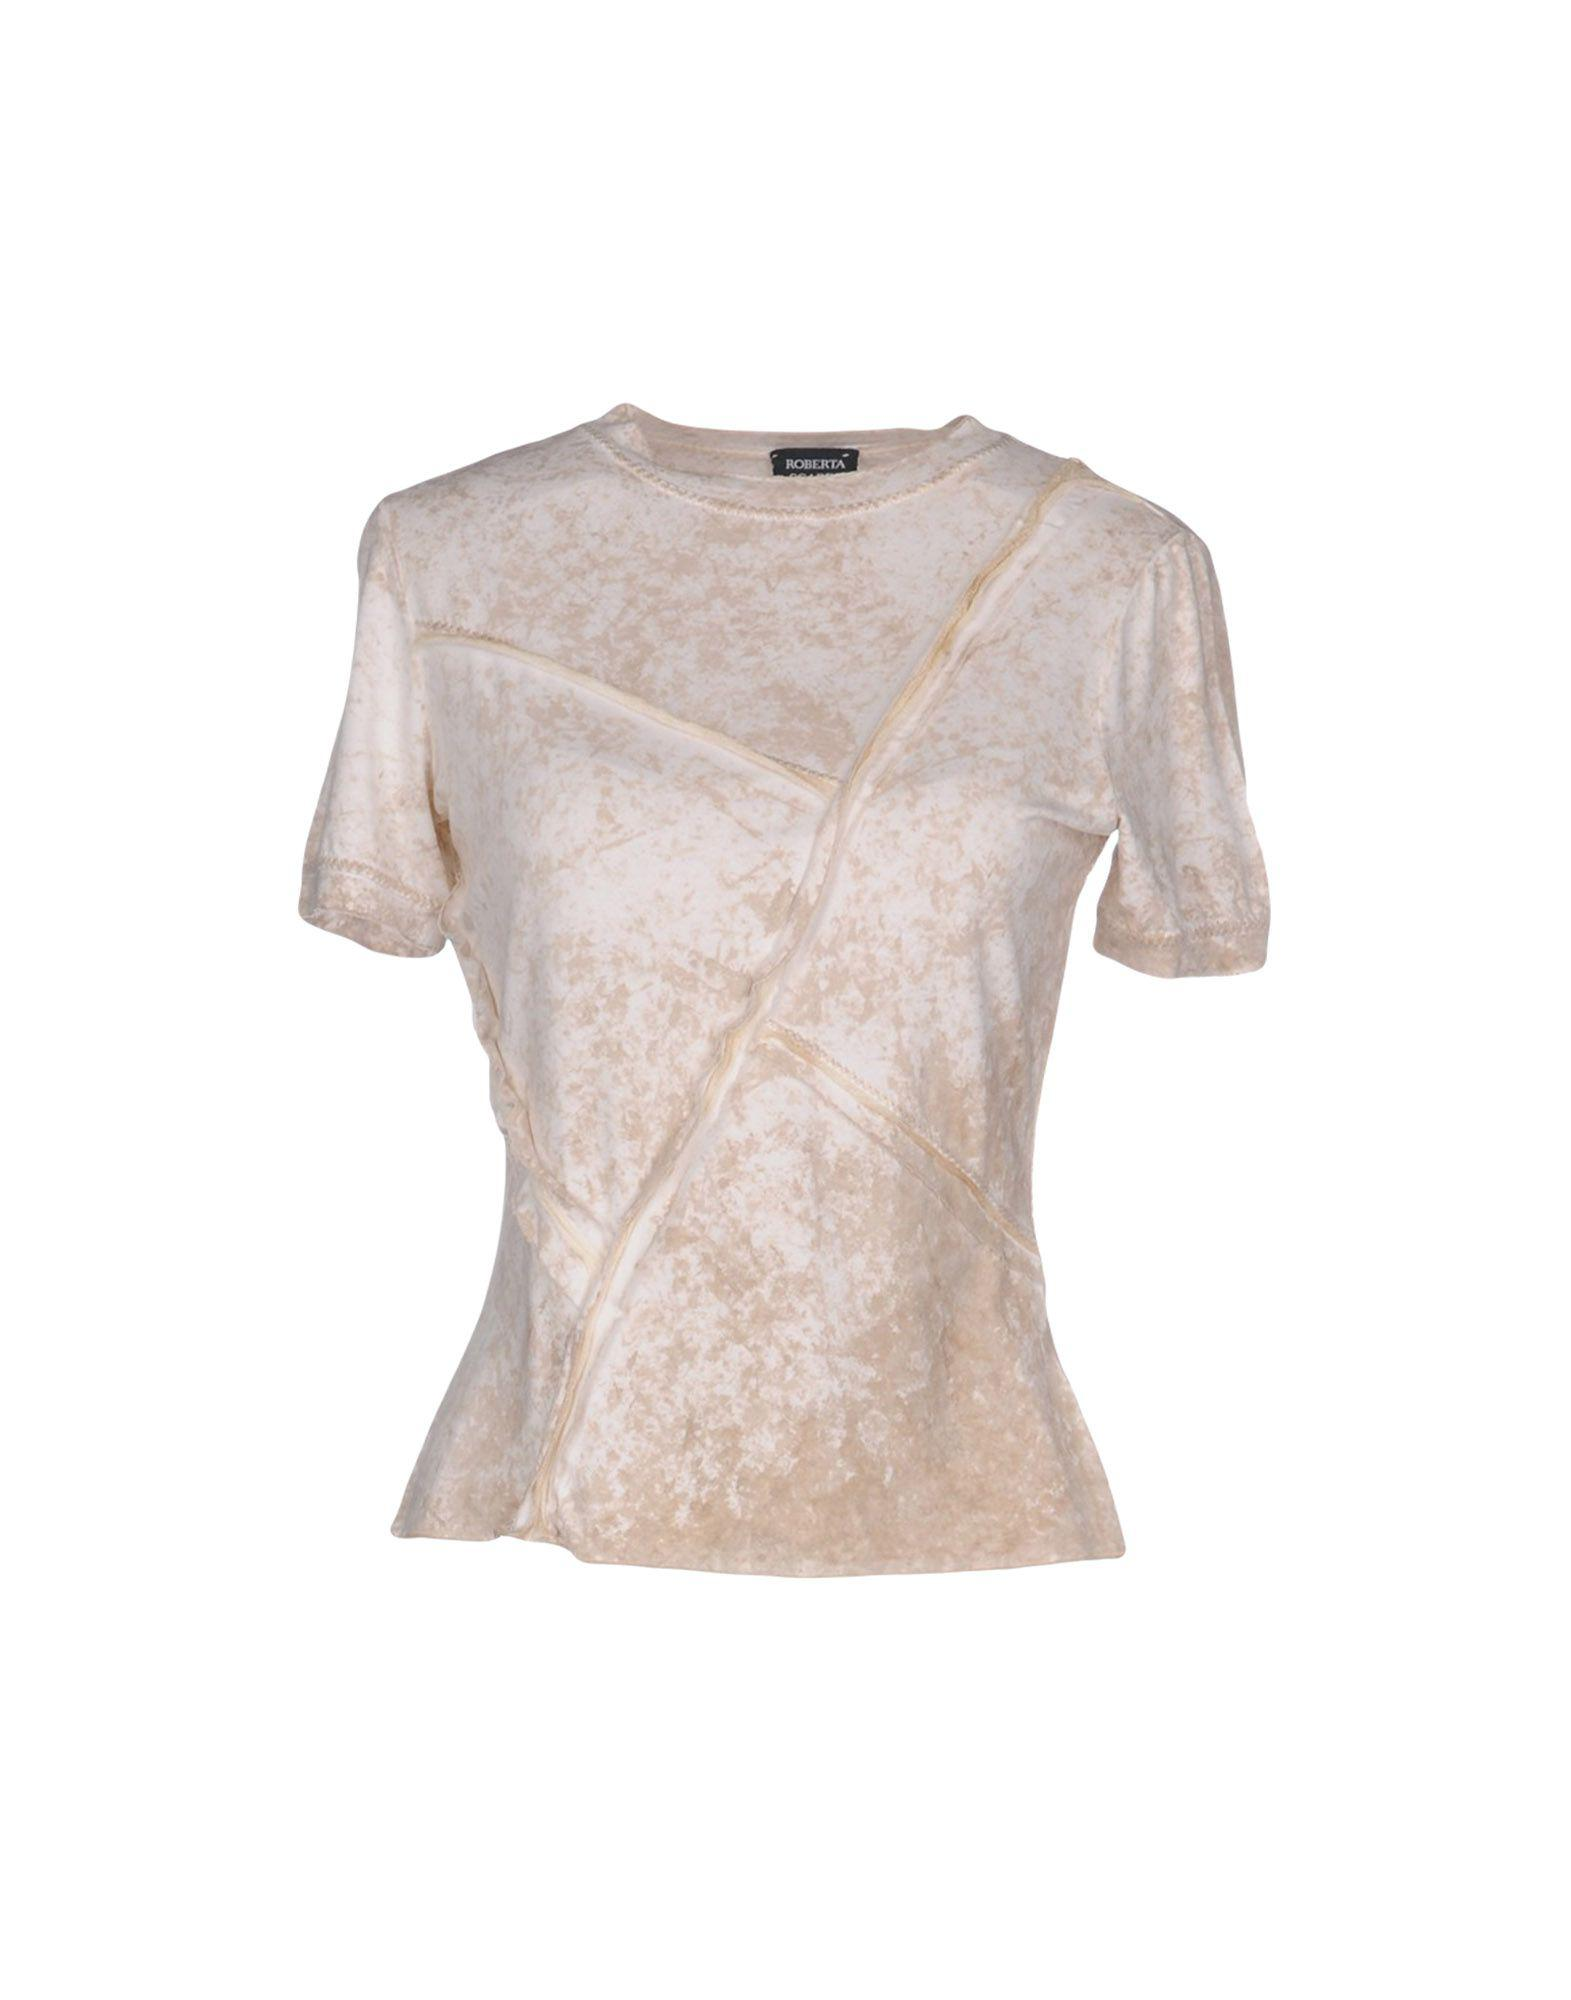 SHIRTS - Blouses Roberta Scarpa Latest Cheap Online Clearance Low Shipping Perfect Discount Enjoy Cheap Recommend GLWqSlPN